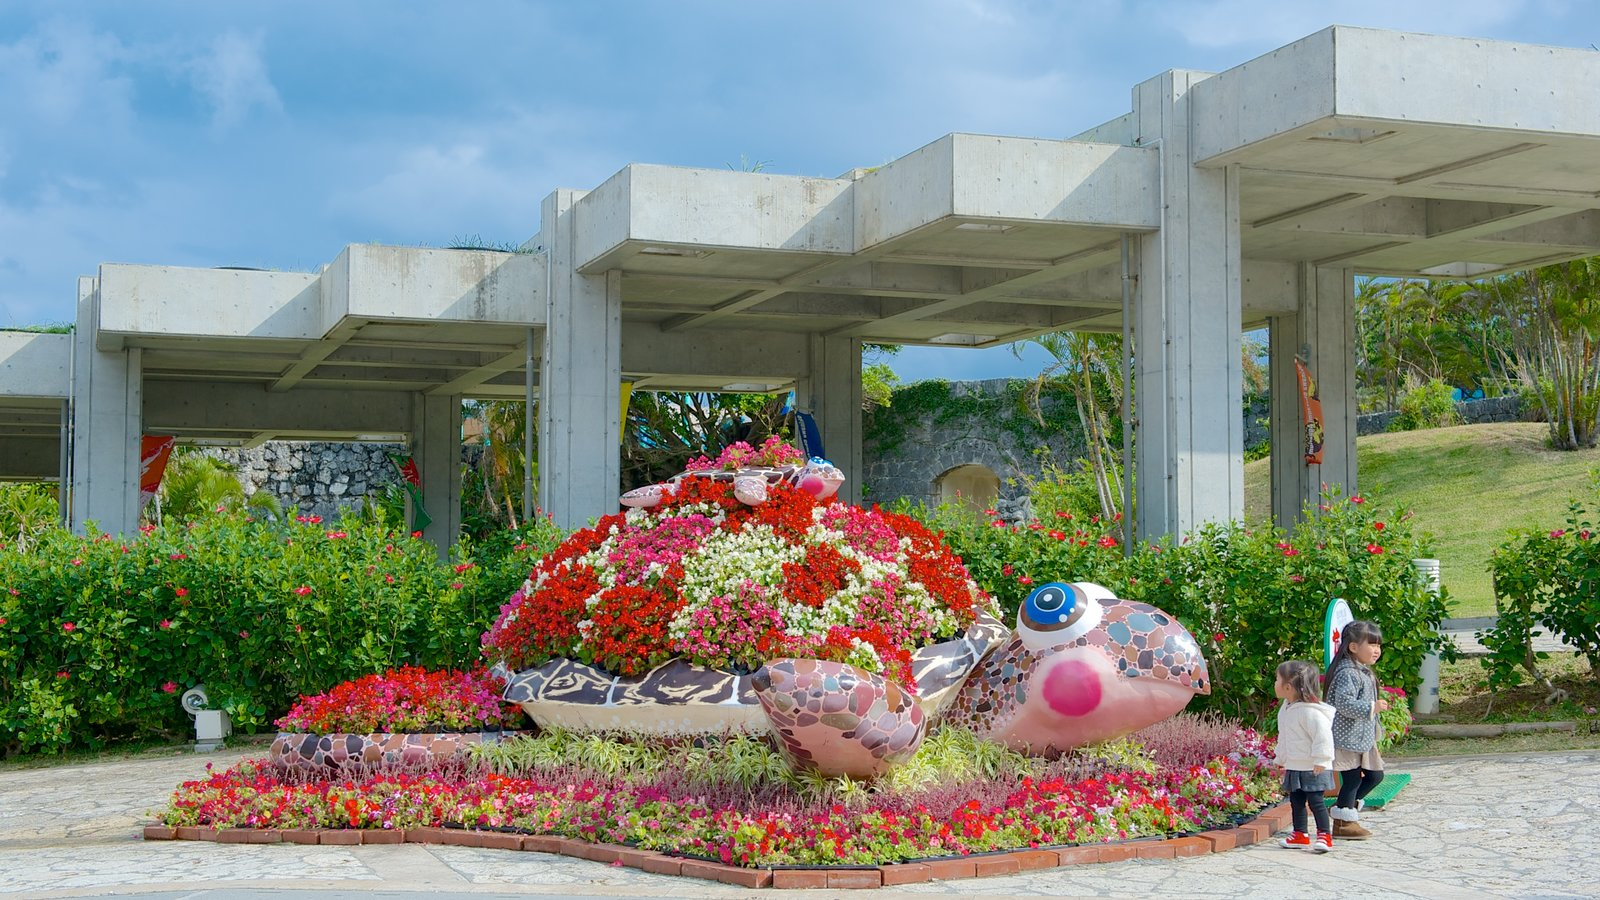 Okinawa Churaumi Aquarium which includes a garden, outdoor art and flowers